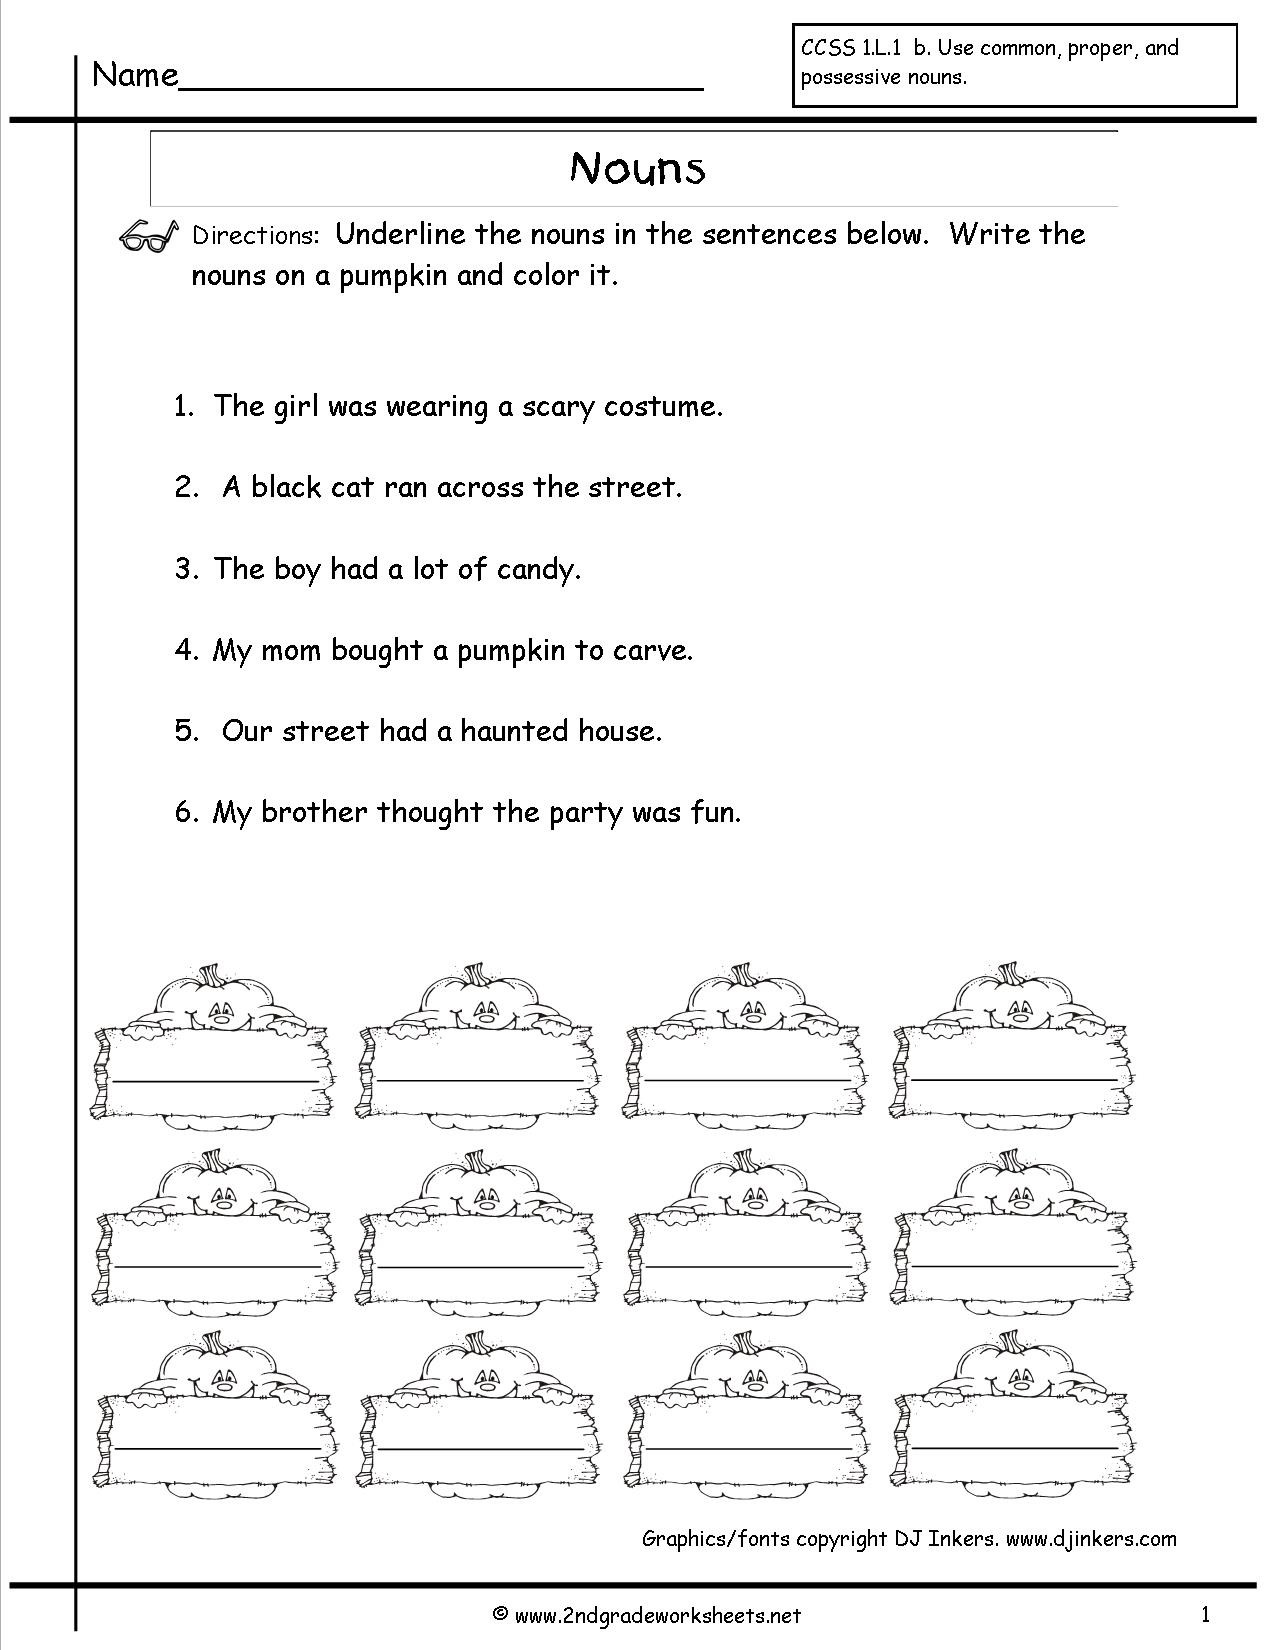 Possessive Noun Worksheet 2nd Grade Ppossessive Nouns Worksheet 2nd Grade